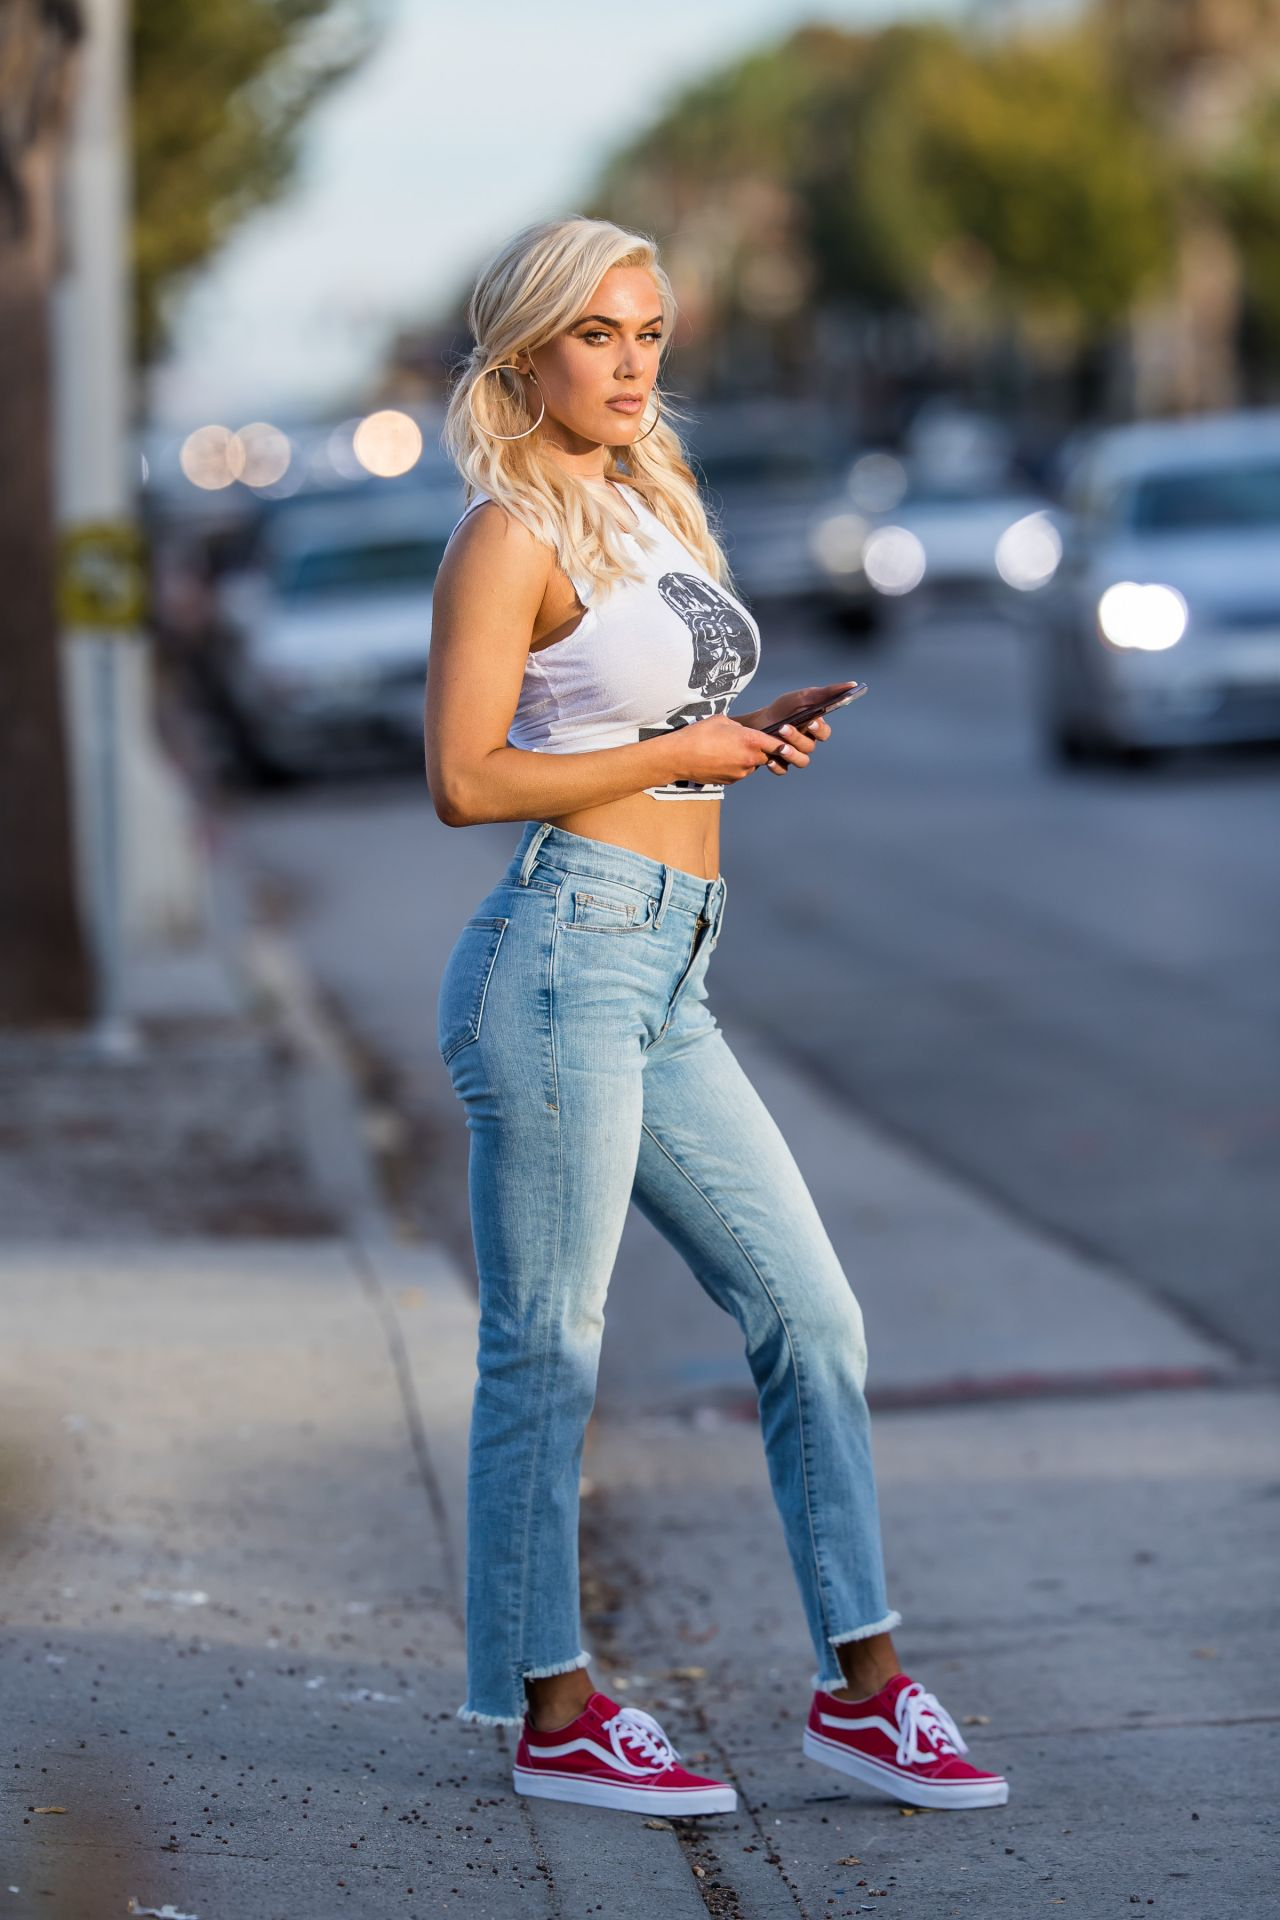 Lana Cj Perry In Tight Star Wars Tee And Jeans In Los -3288